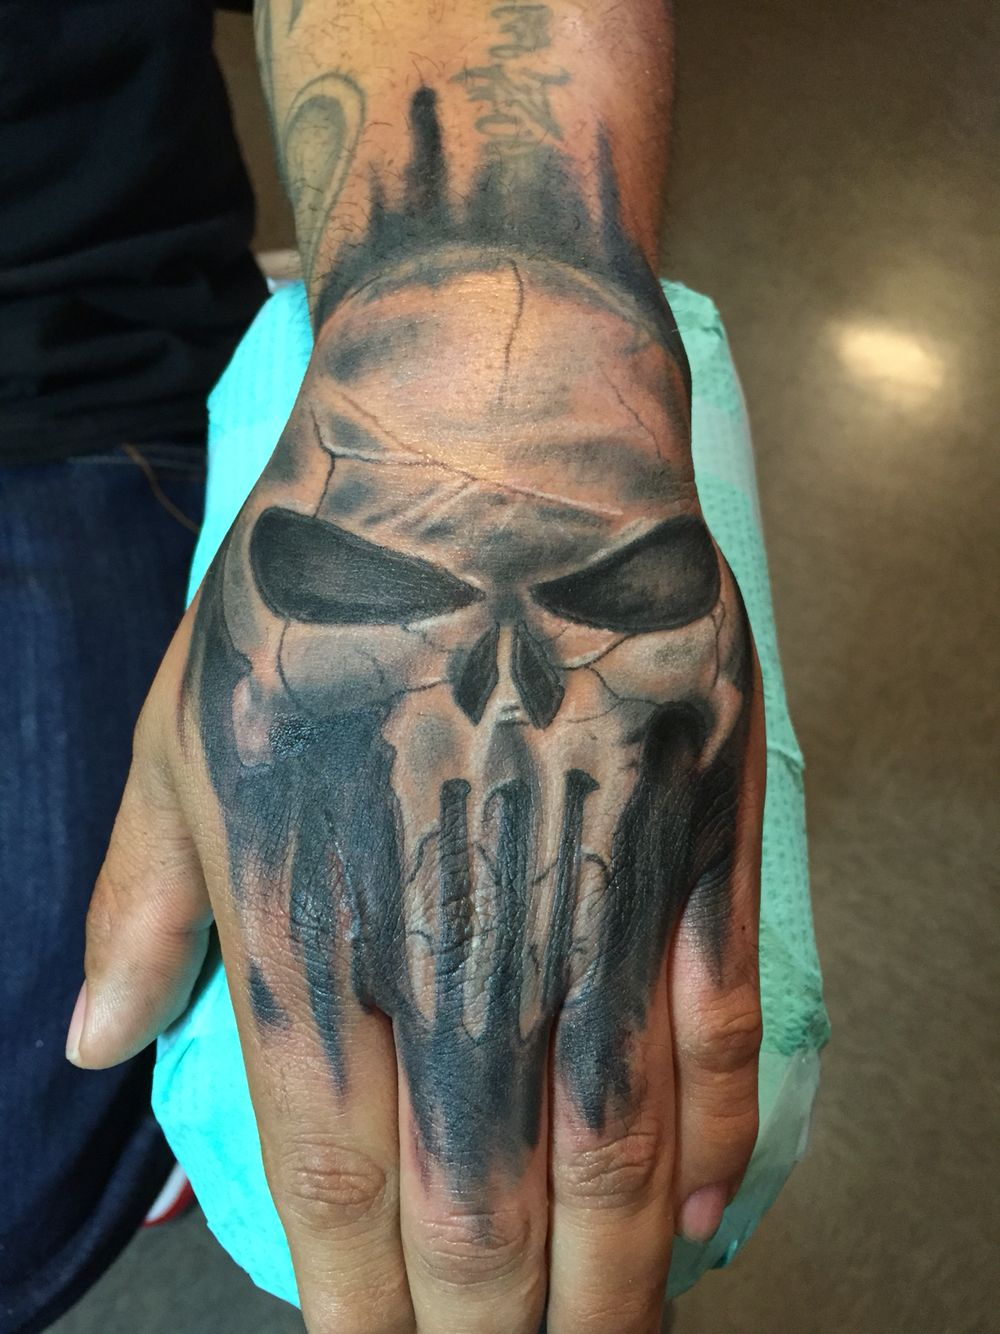 3352b8b49 Punisher skull on top of hand tattoo by Spirits in the Flesh tattoo studio  S.F www.spiritsinthefleshtattoo.com